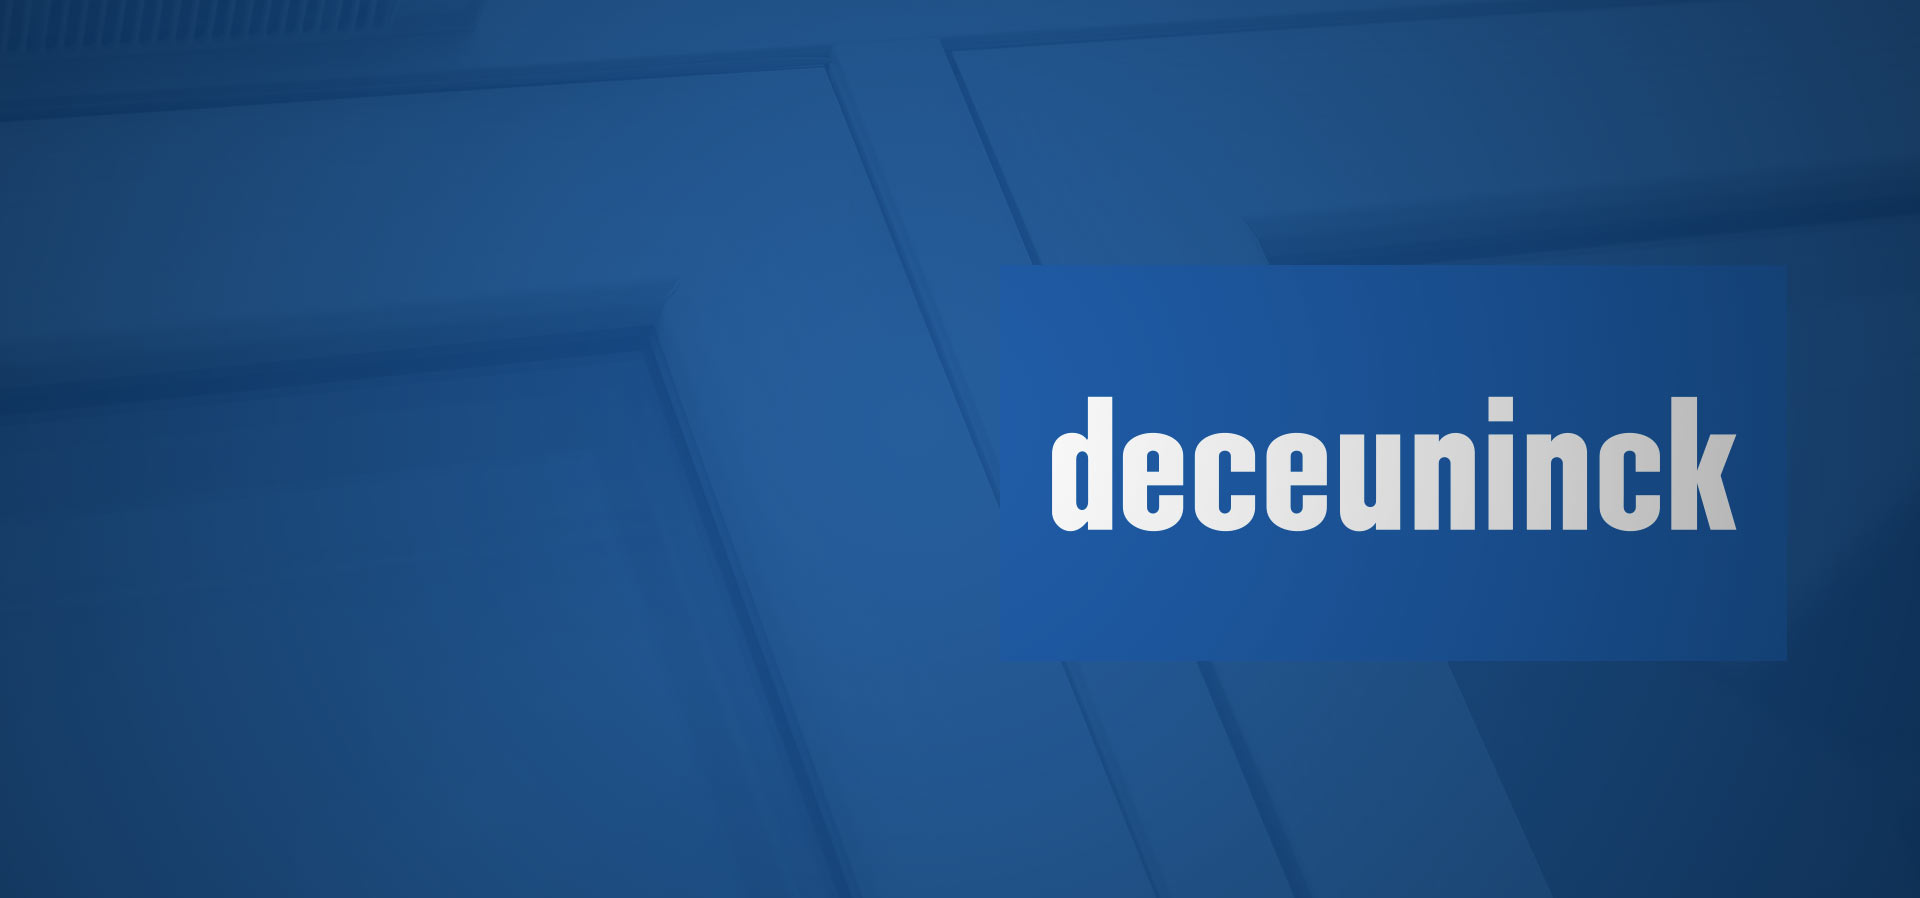 Deceuninck uPVC windows